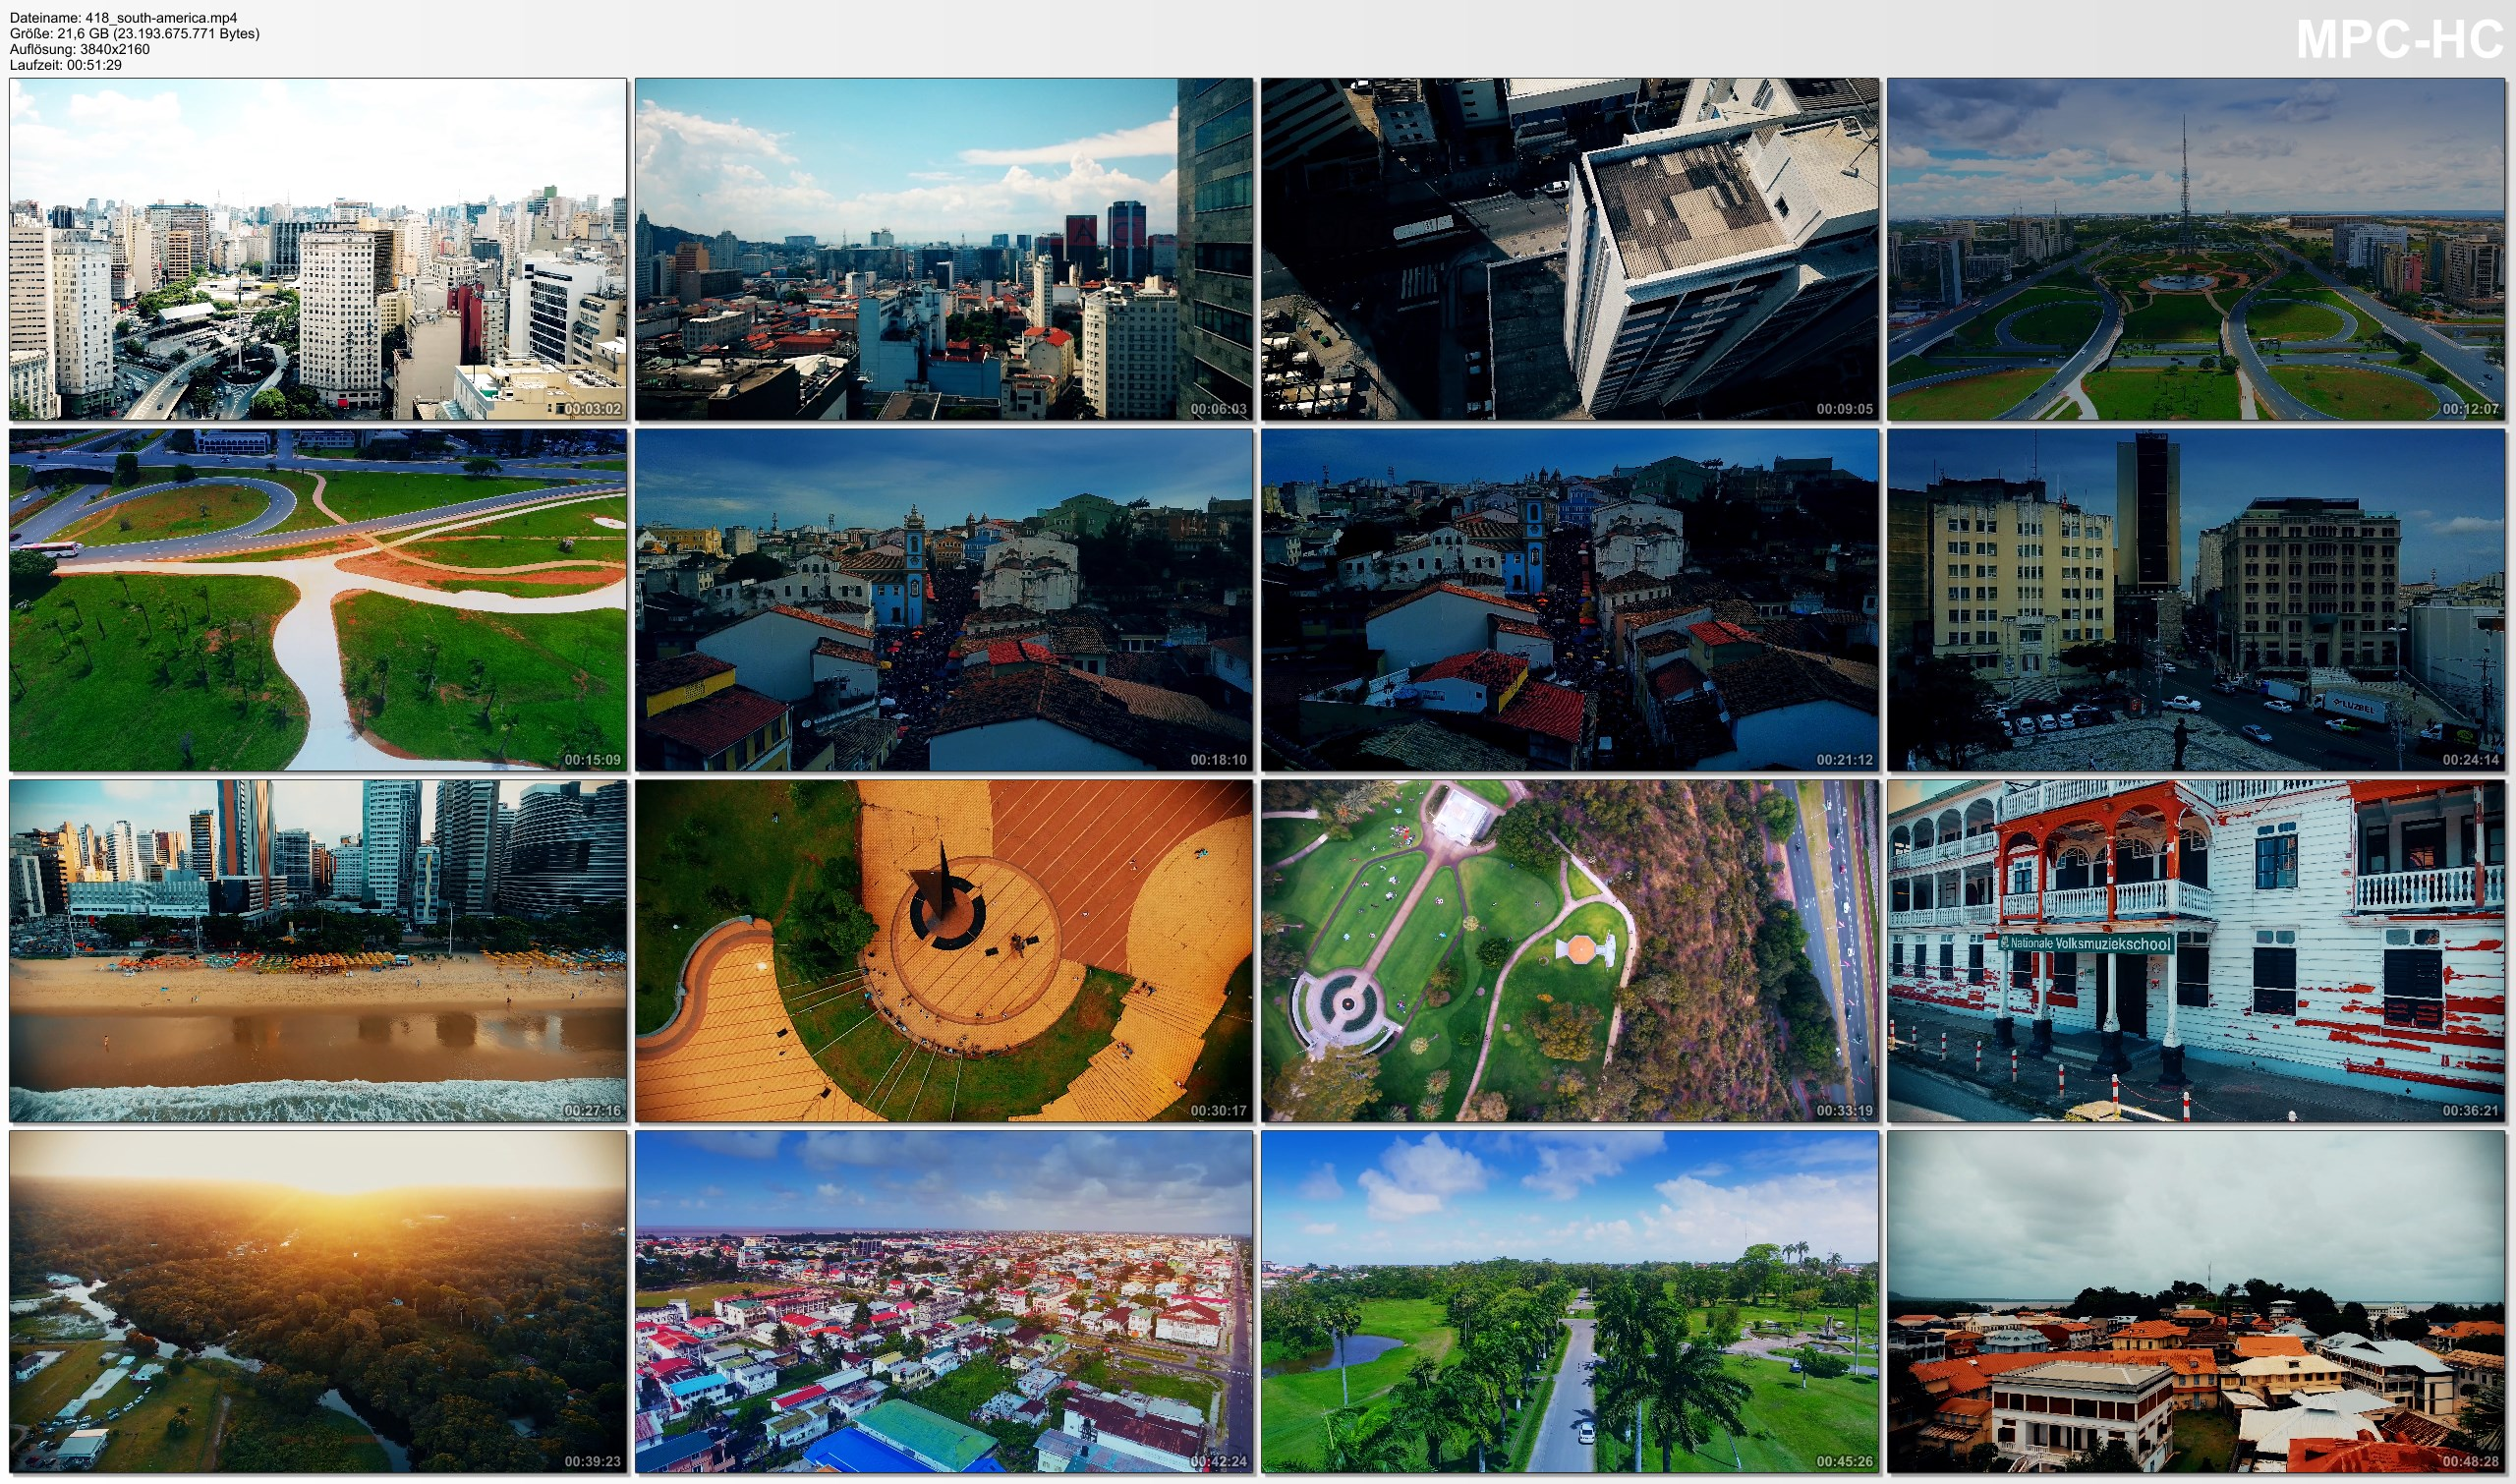 Drone Pictures from Video 【4K】Drone Footage | 11 MEGACITIES of South America and Oceania 2019 ..:: Cinematic Aerial Film